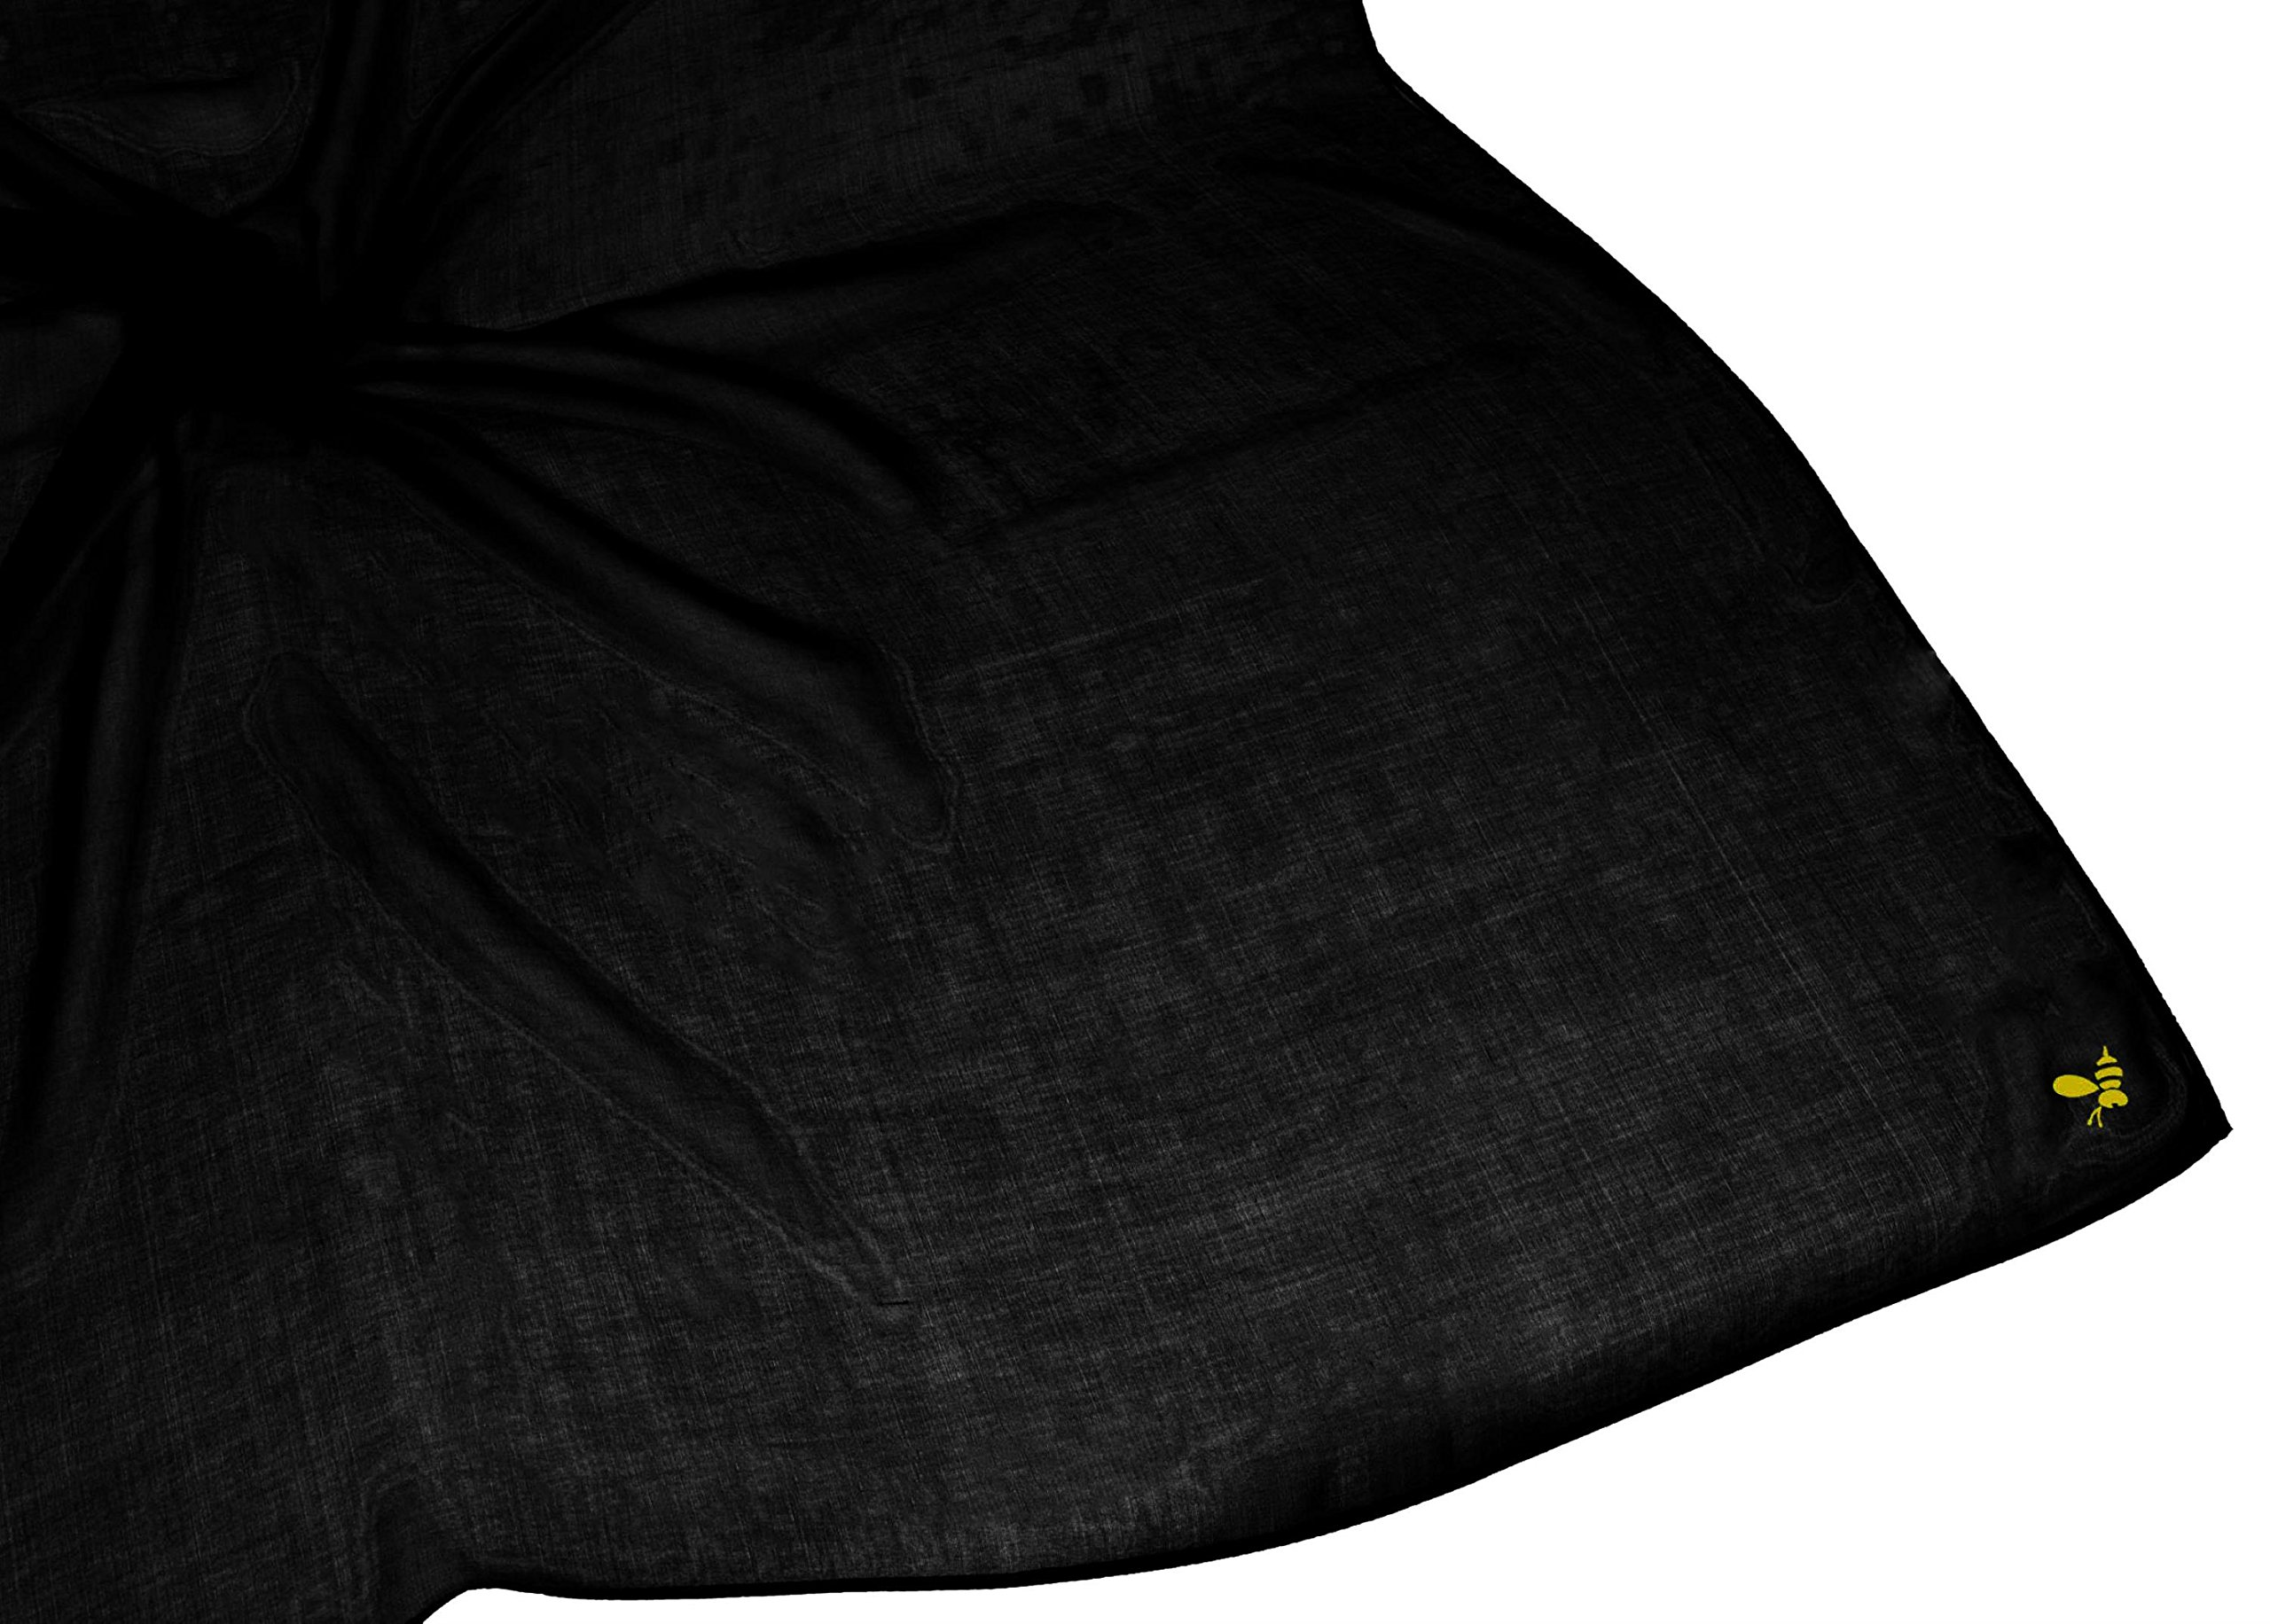 Black Large Very Fine Pure Silk Square Scarf by Bees Knees Fashion (Image #3)